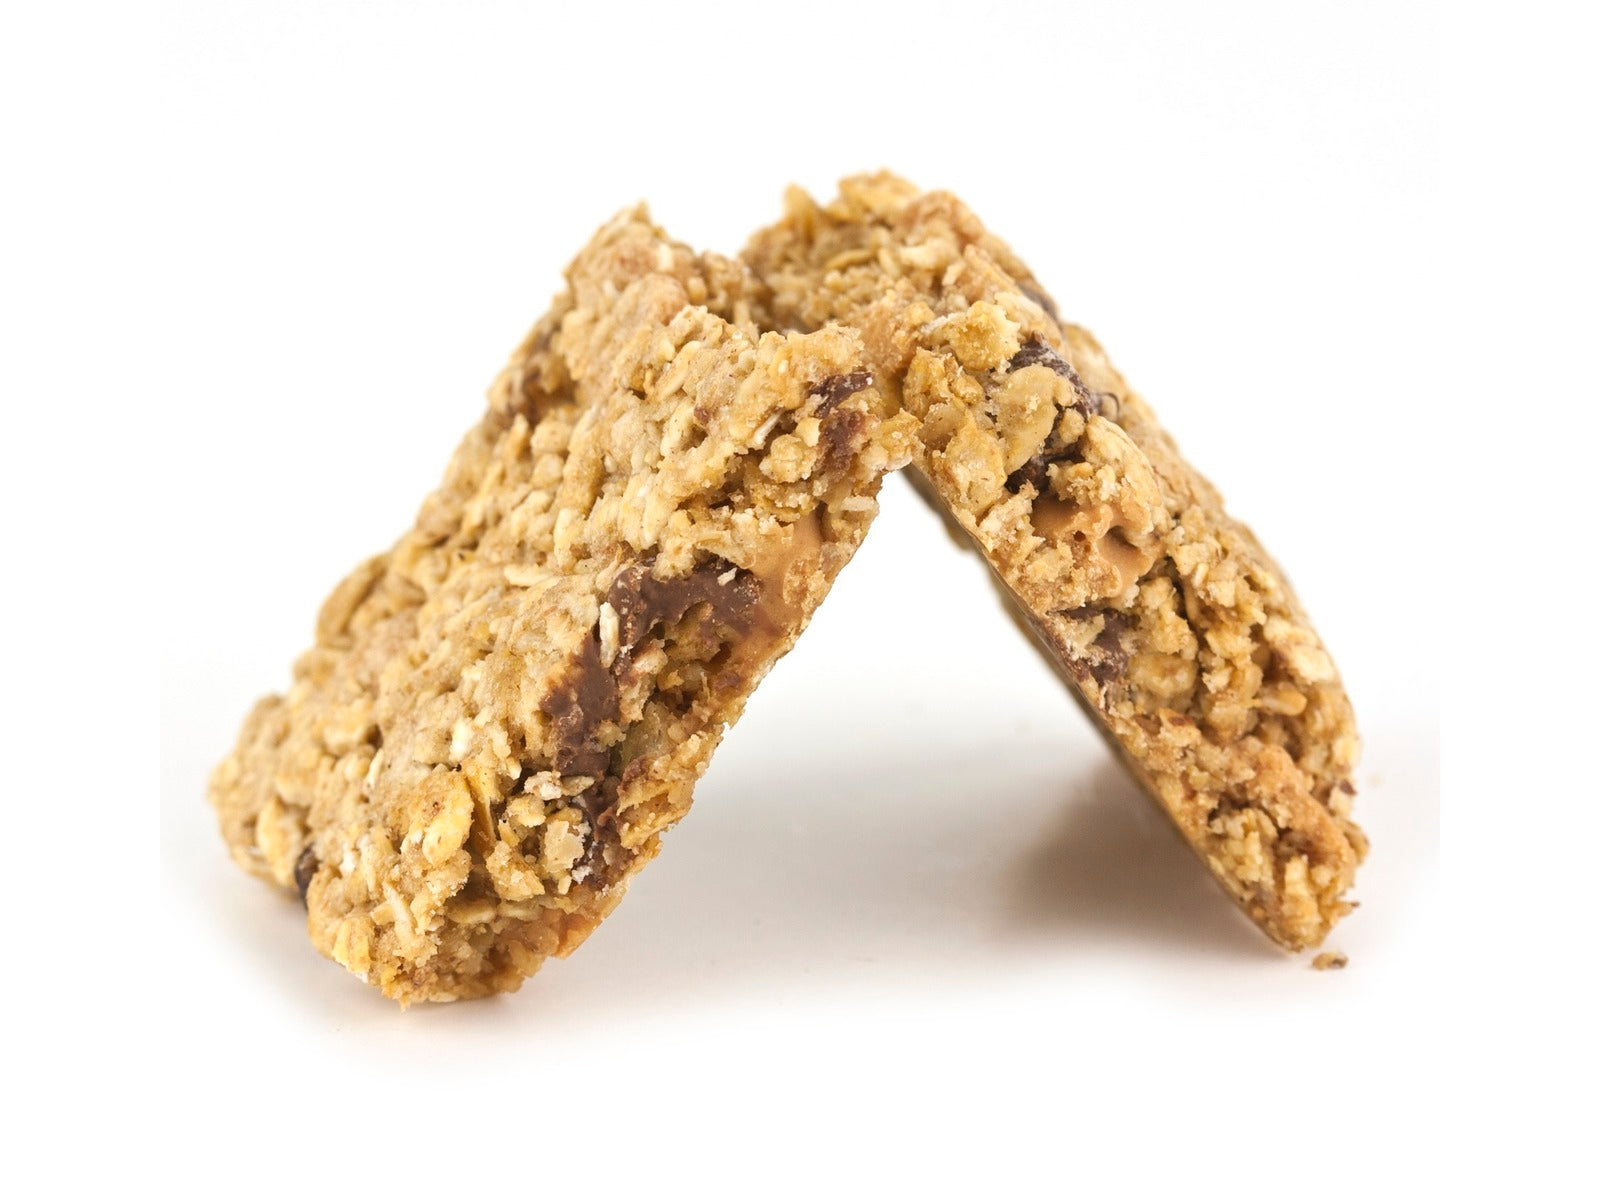 Amish - Granola Bar - Peanut Butter Chocolate Chip